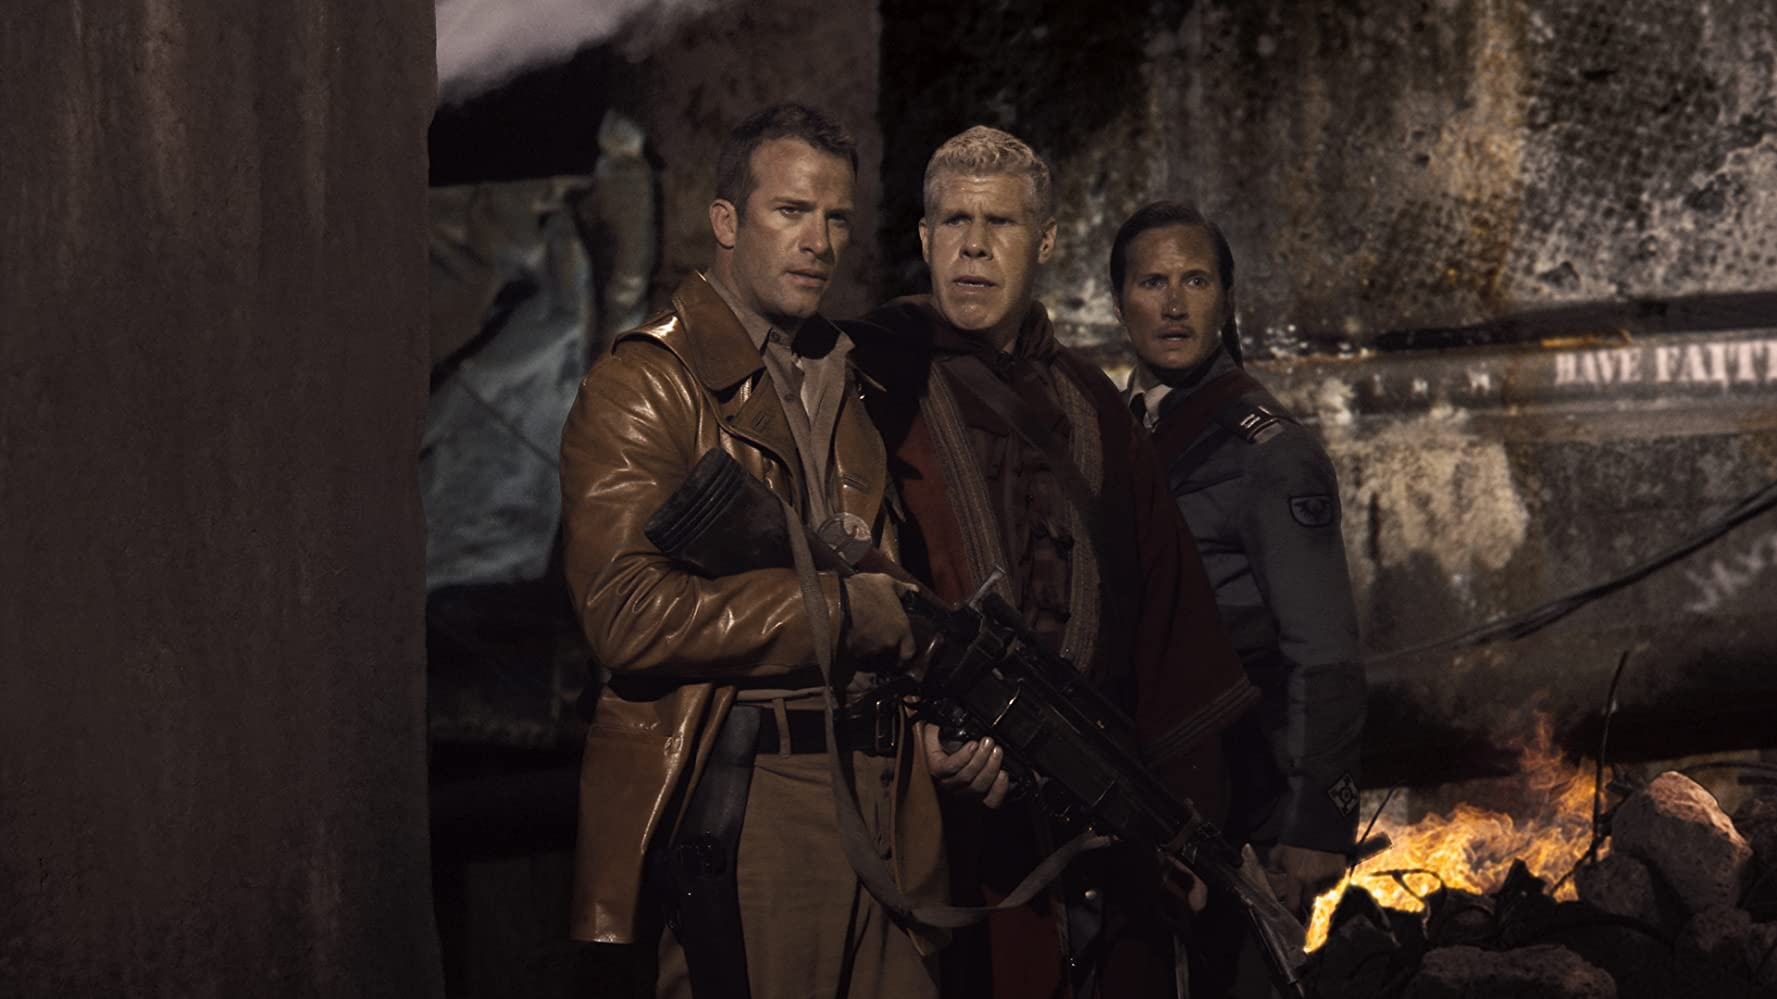 Ron Perlman, Thomas Jane, and Benno Fürmann in Mutant Chronicles (2008)